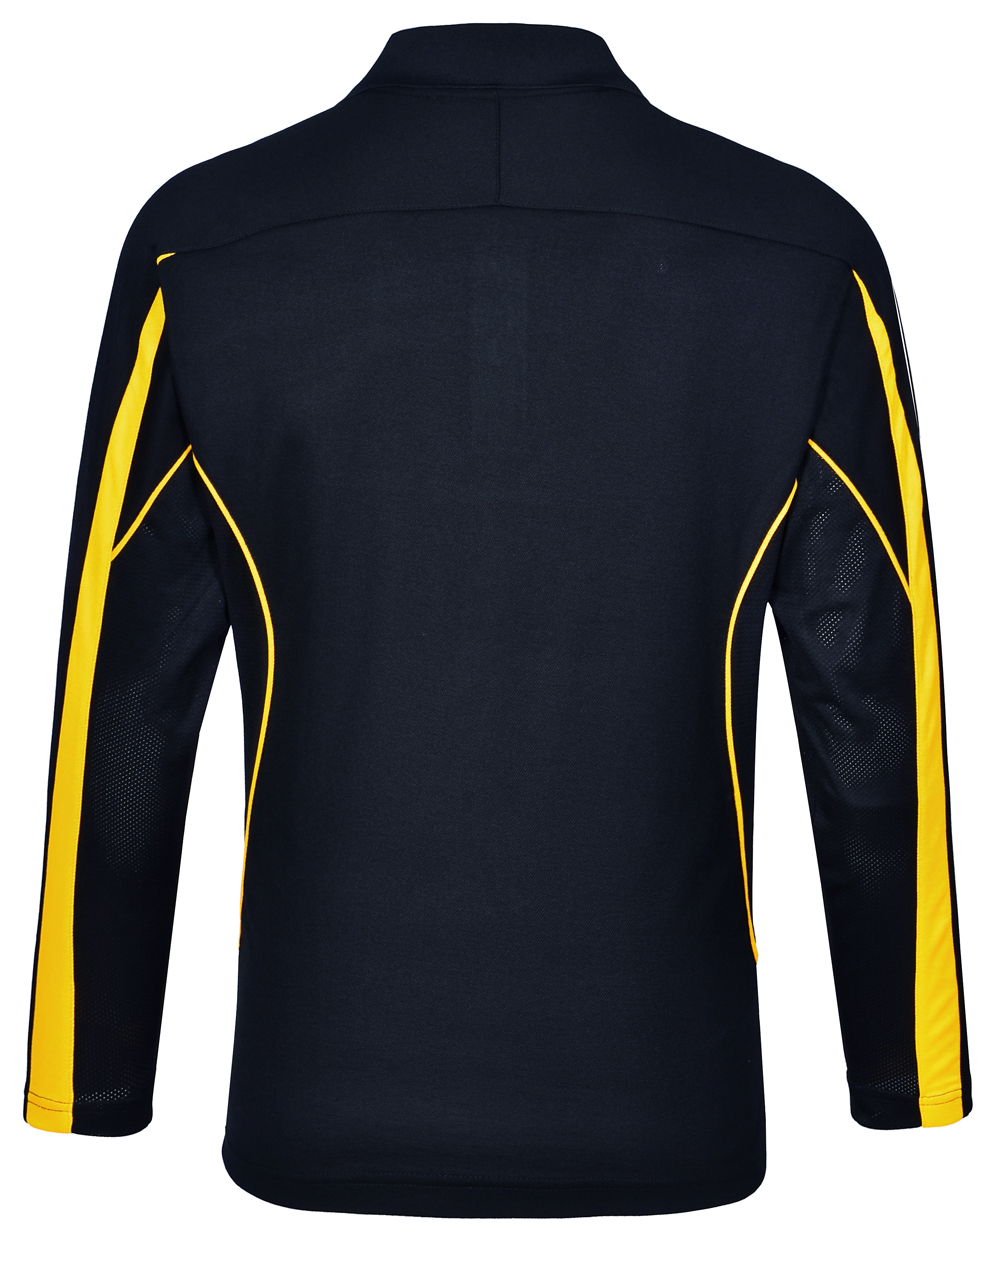 https://s3-ap-southeast-1.amazonaws.com/ws-imgs/POLOSHIRTS/PS69_NavyGold_Back_l.jpg